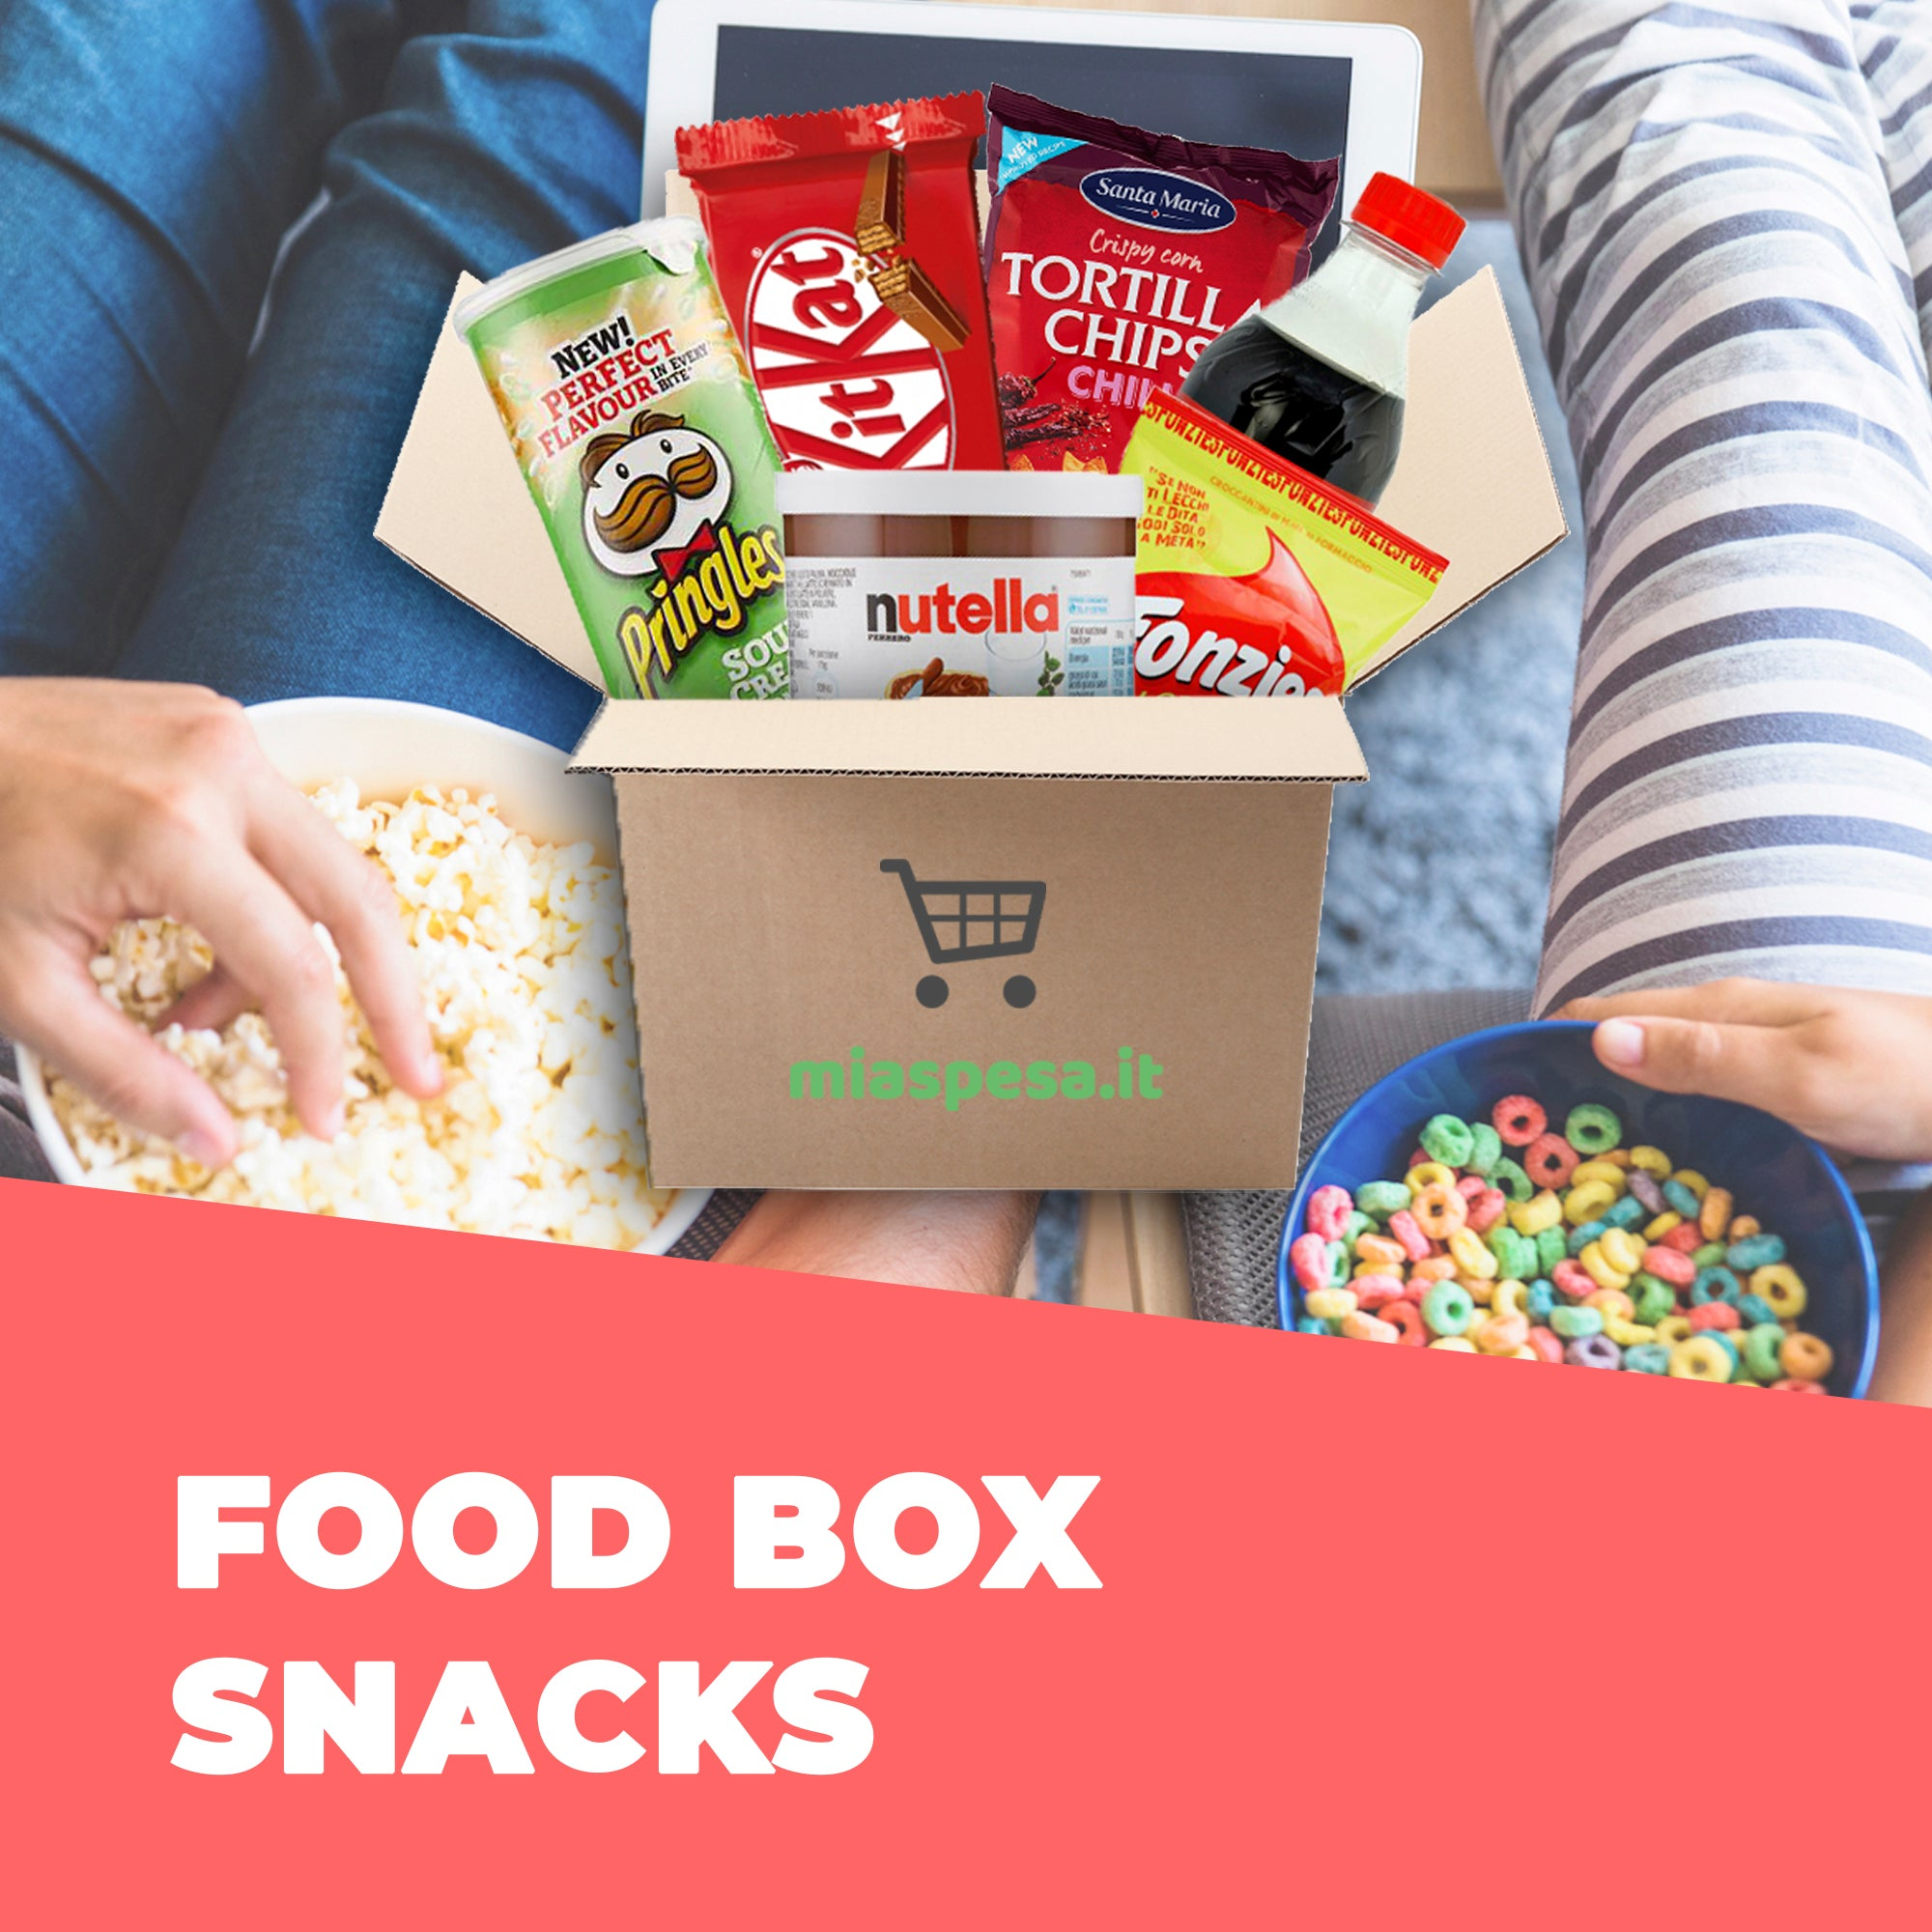 Food Box Snacks